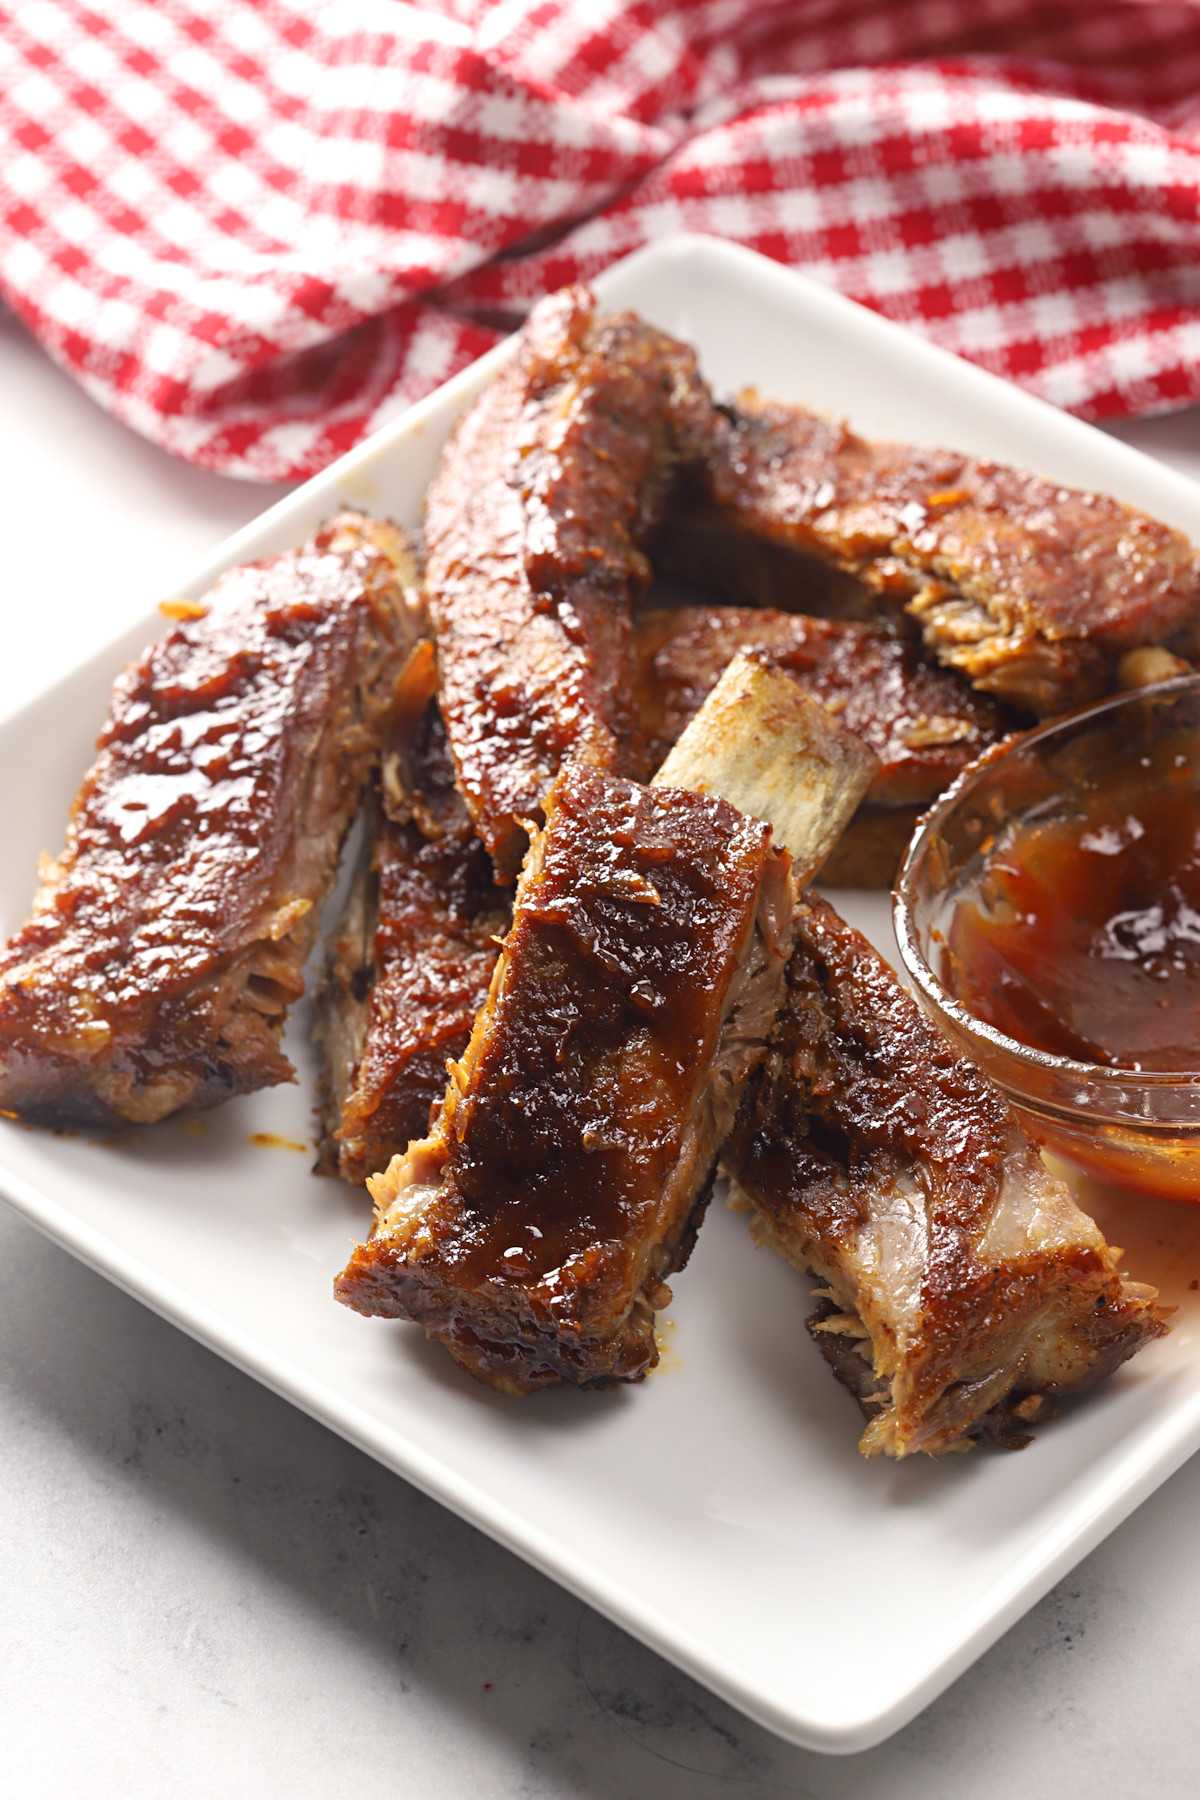 Oven baked ribs on a white plate.